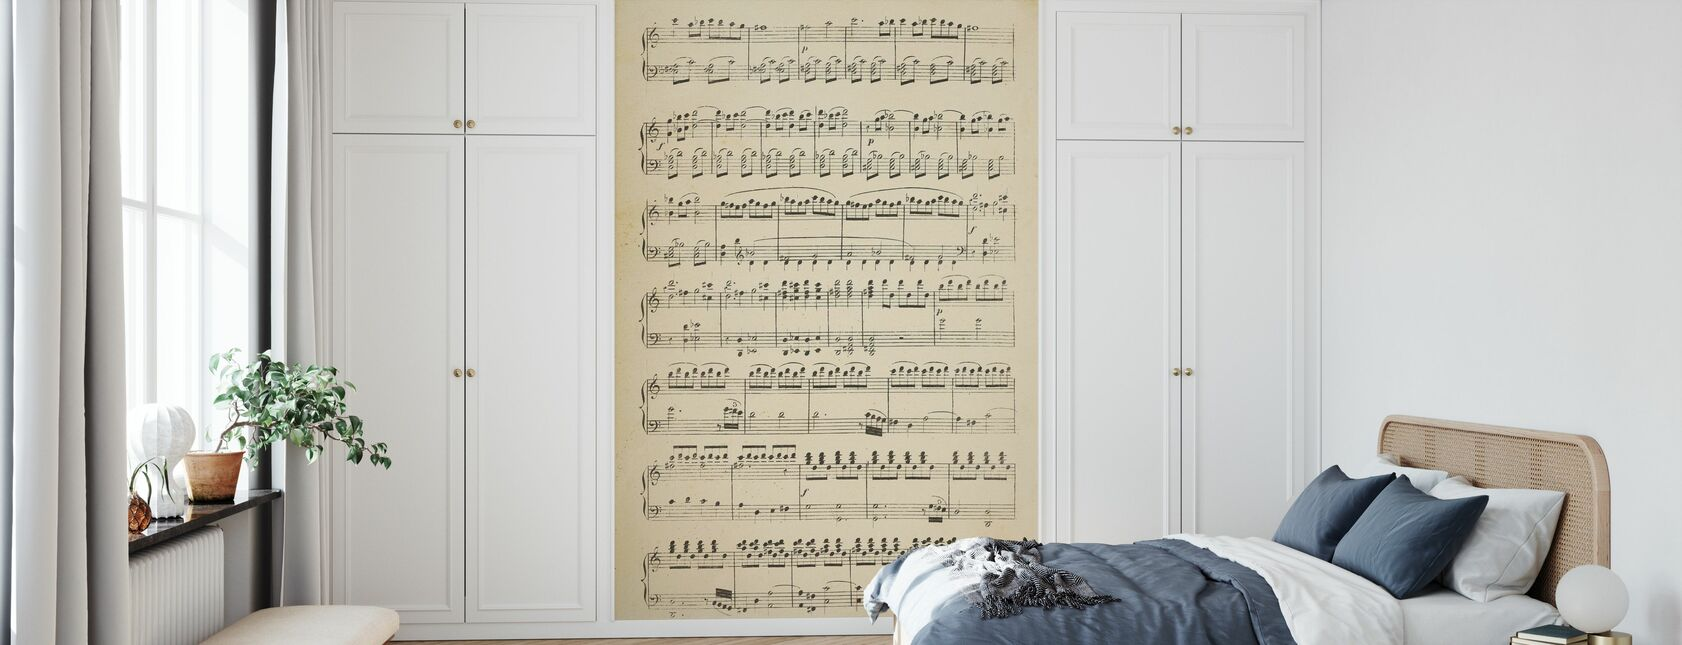 Musical Notes part 1 - Wallpaper - Bedroom